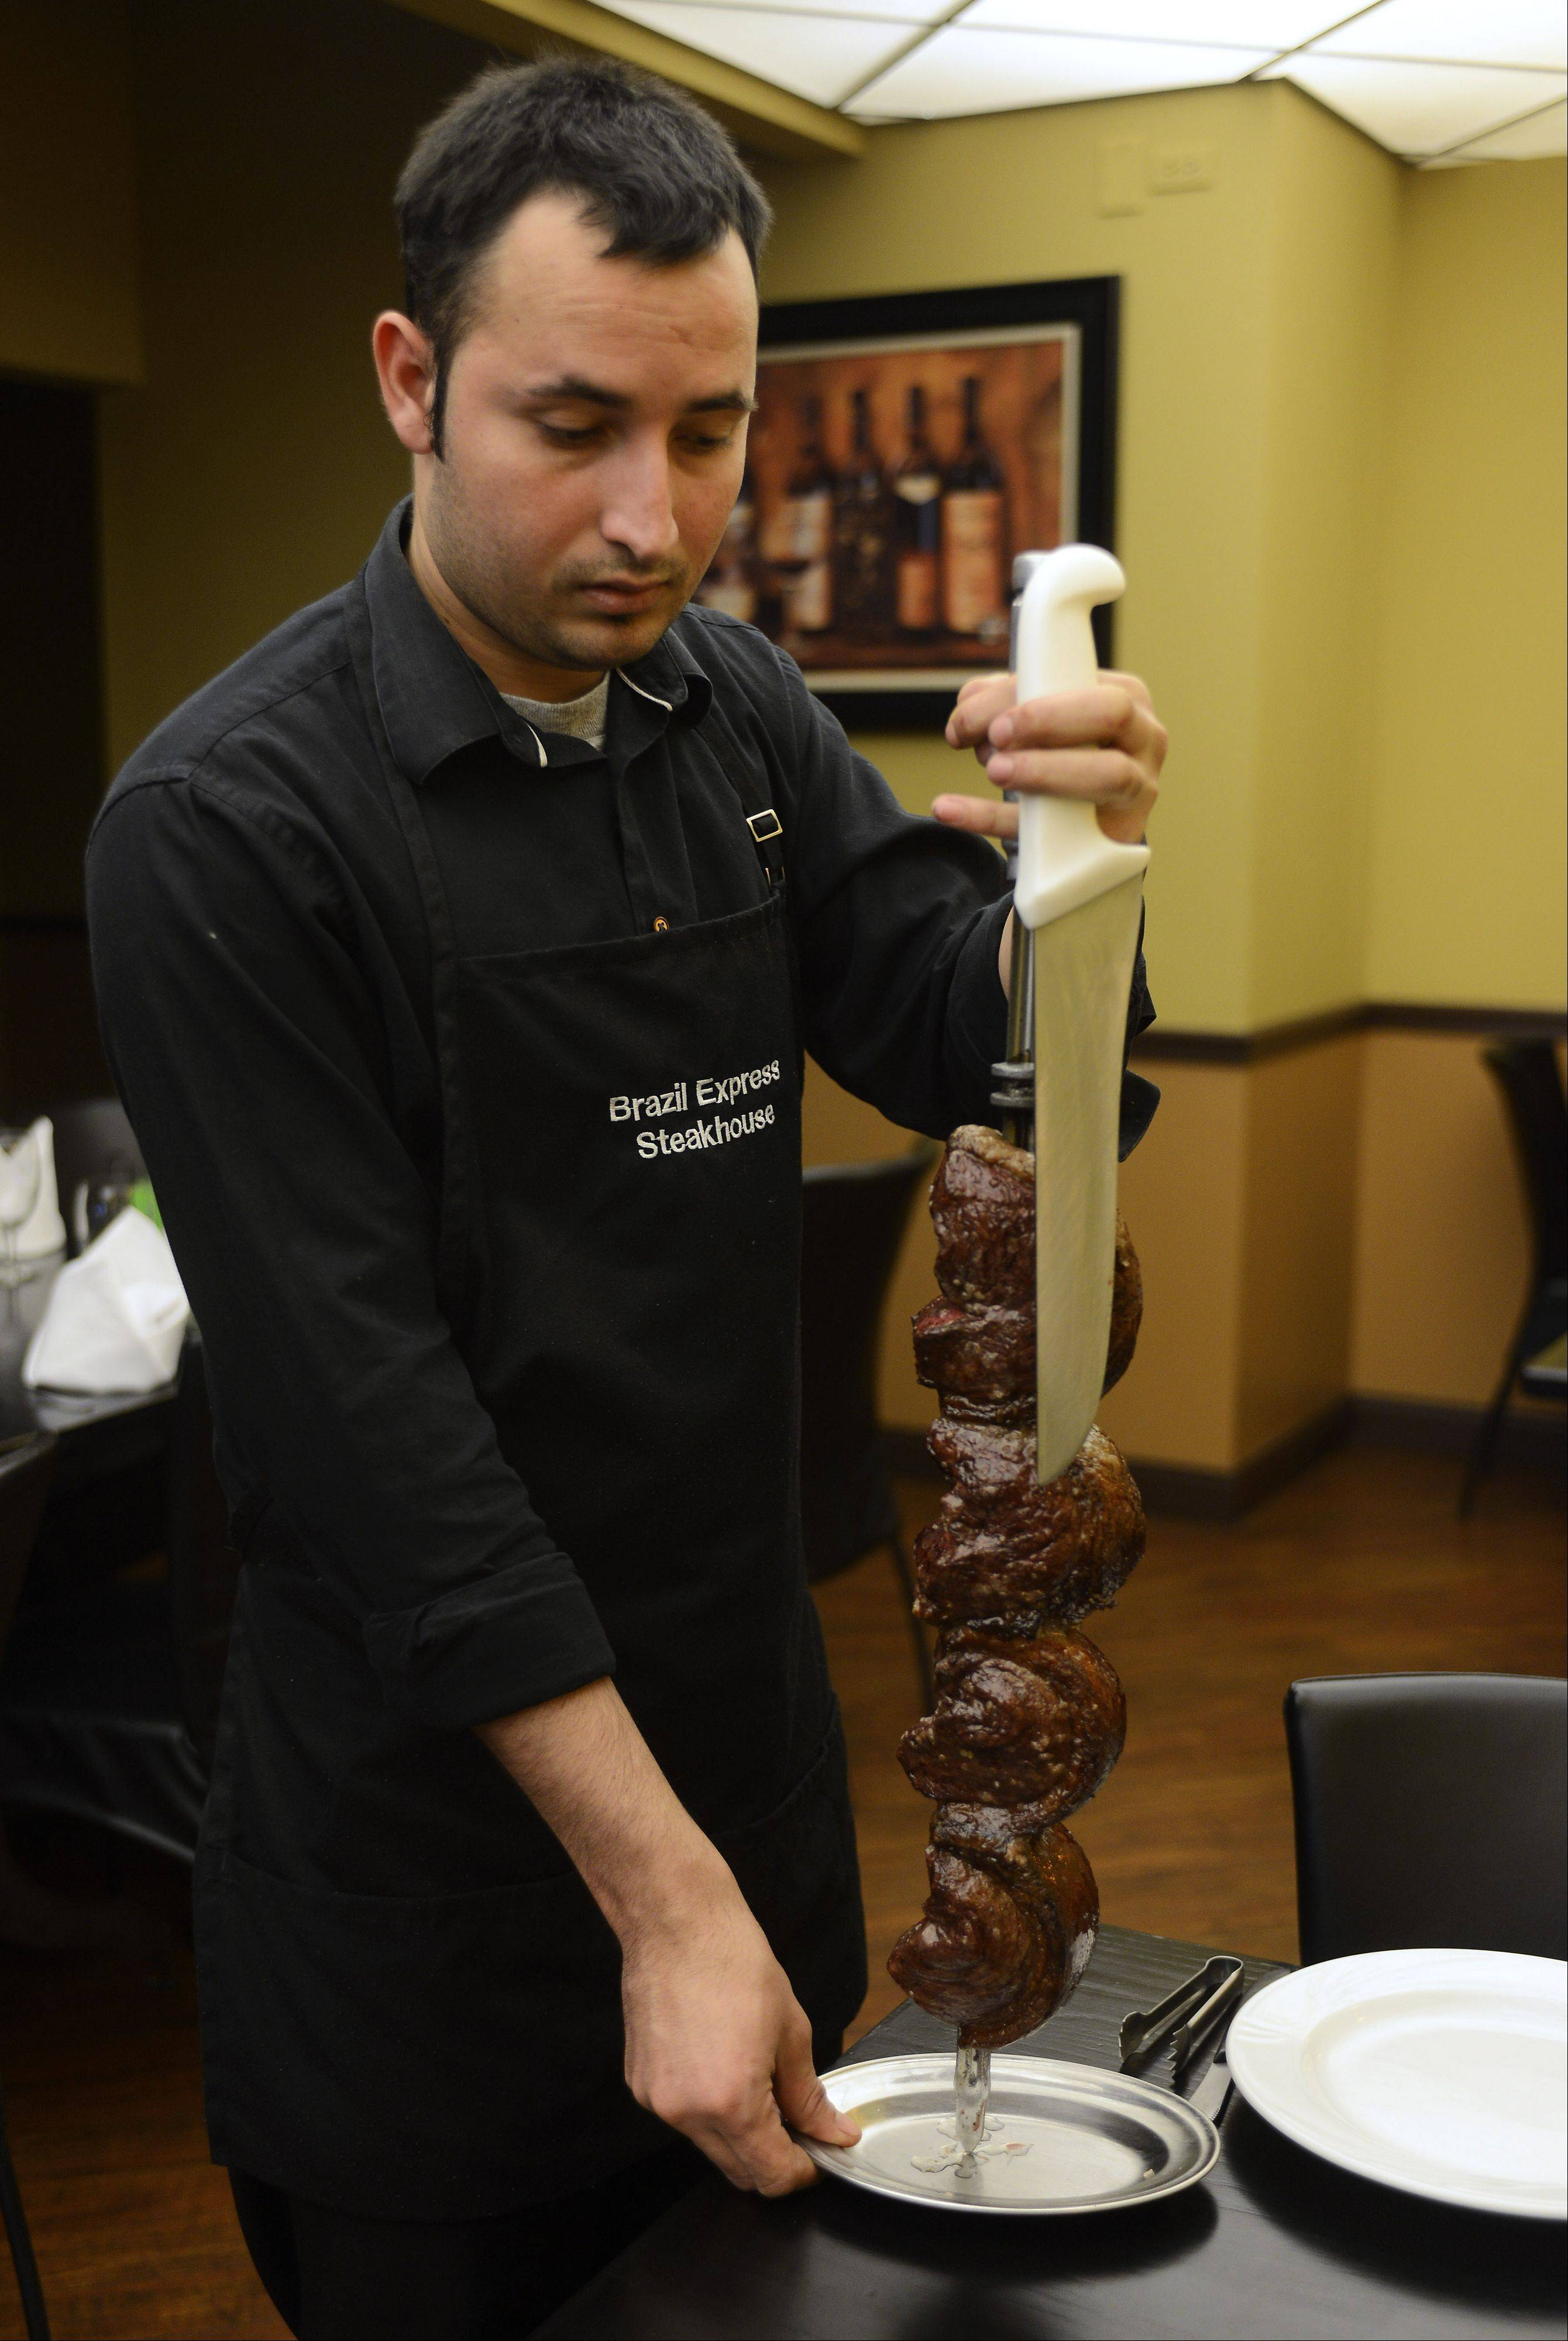 Mario Angueta shows off the piranha prime sirloin skewer at Brazil Express.